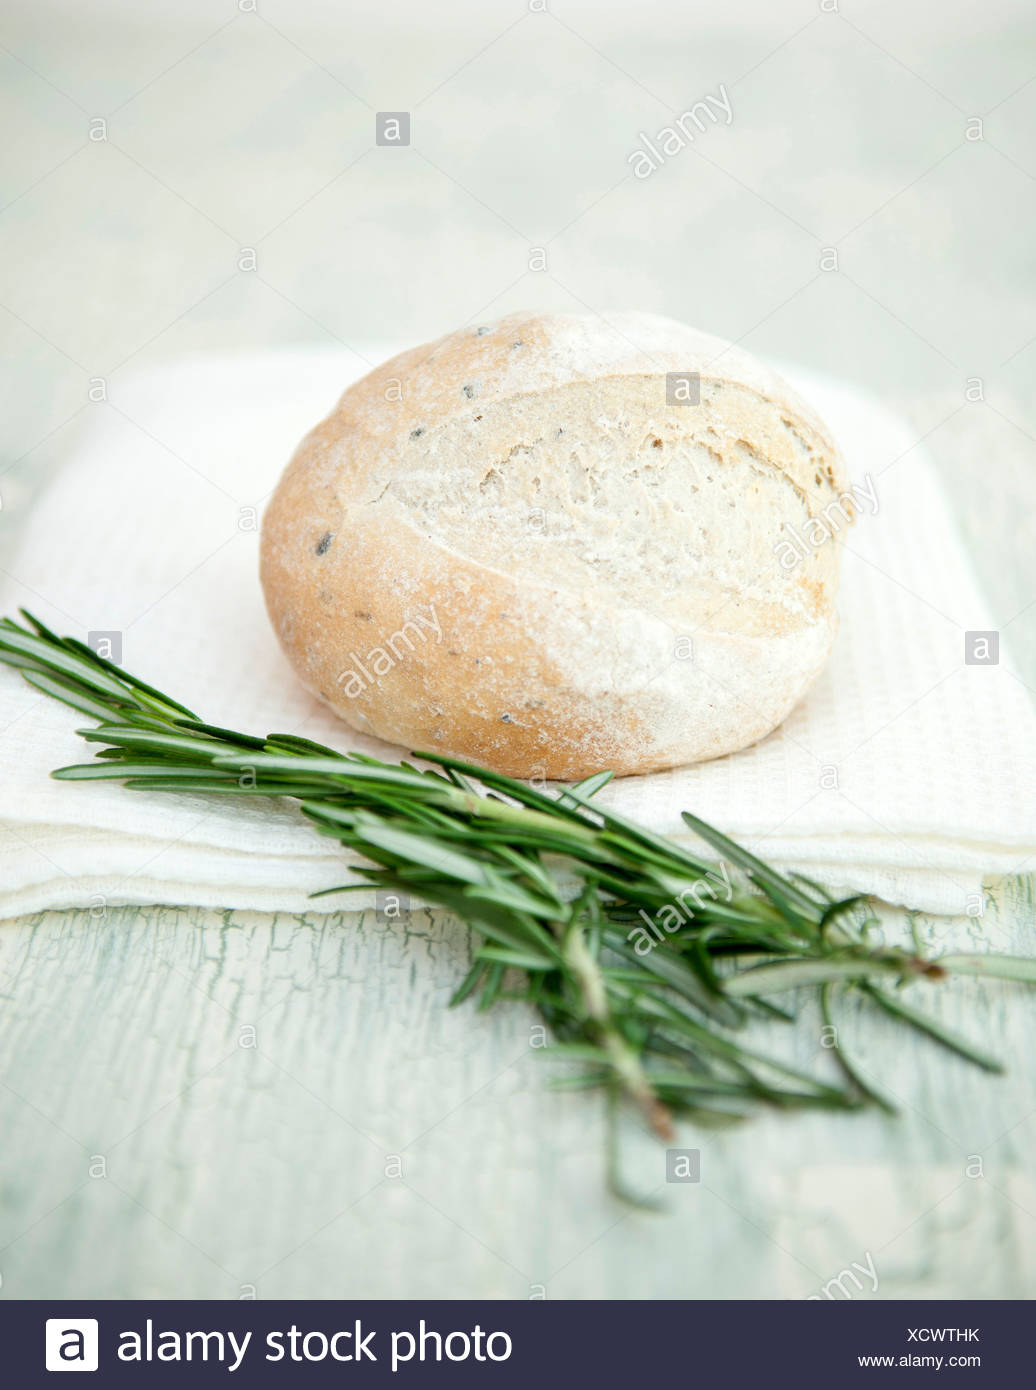 Fresh Artisan Bread with sprigs of rosemary - Stock Image